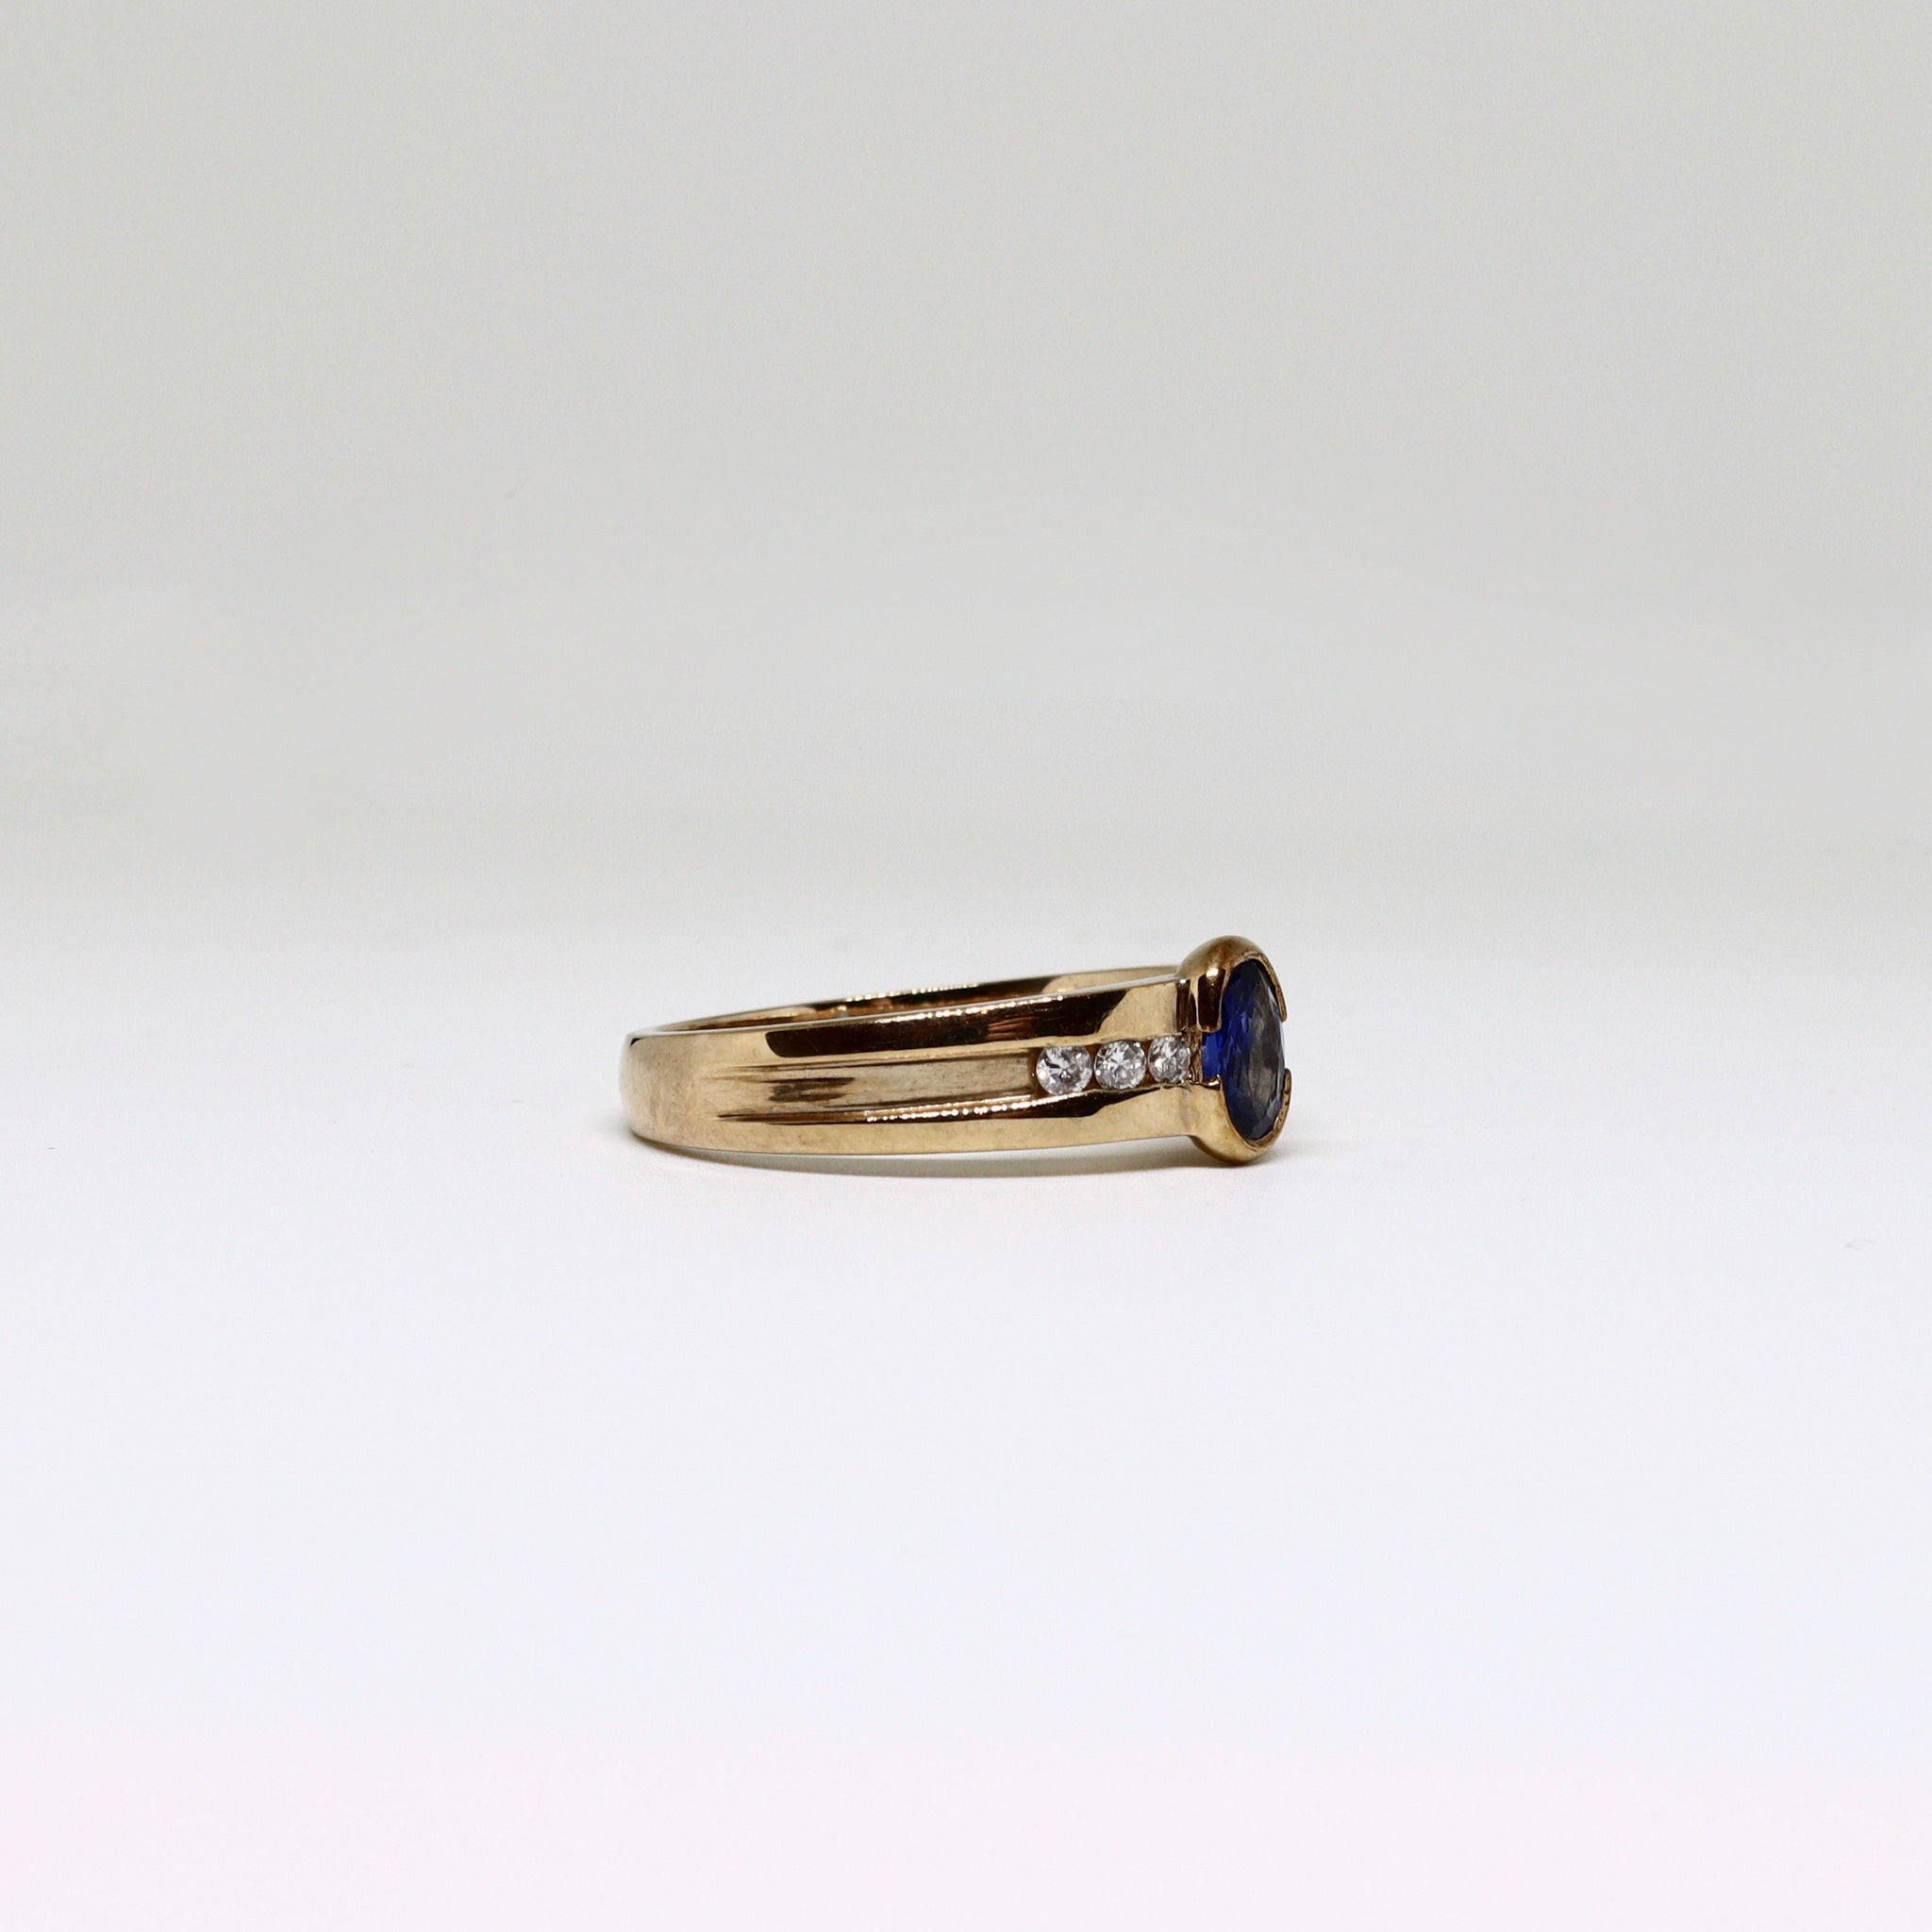 Sapphire dress ring with diamond channel set shoulders